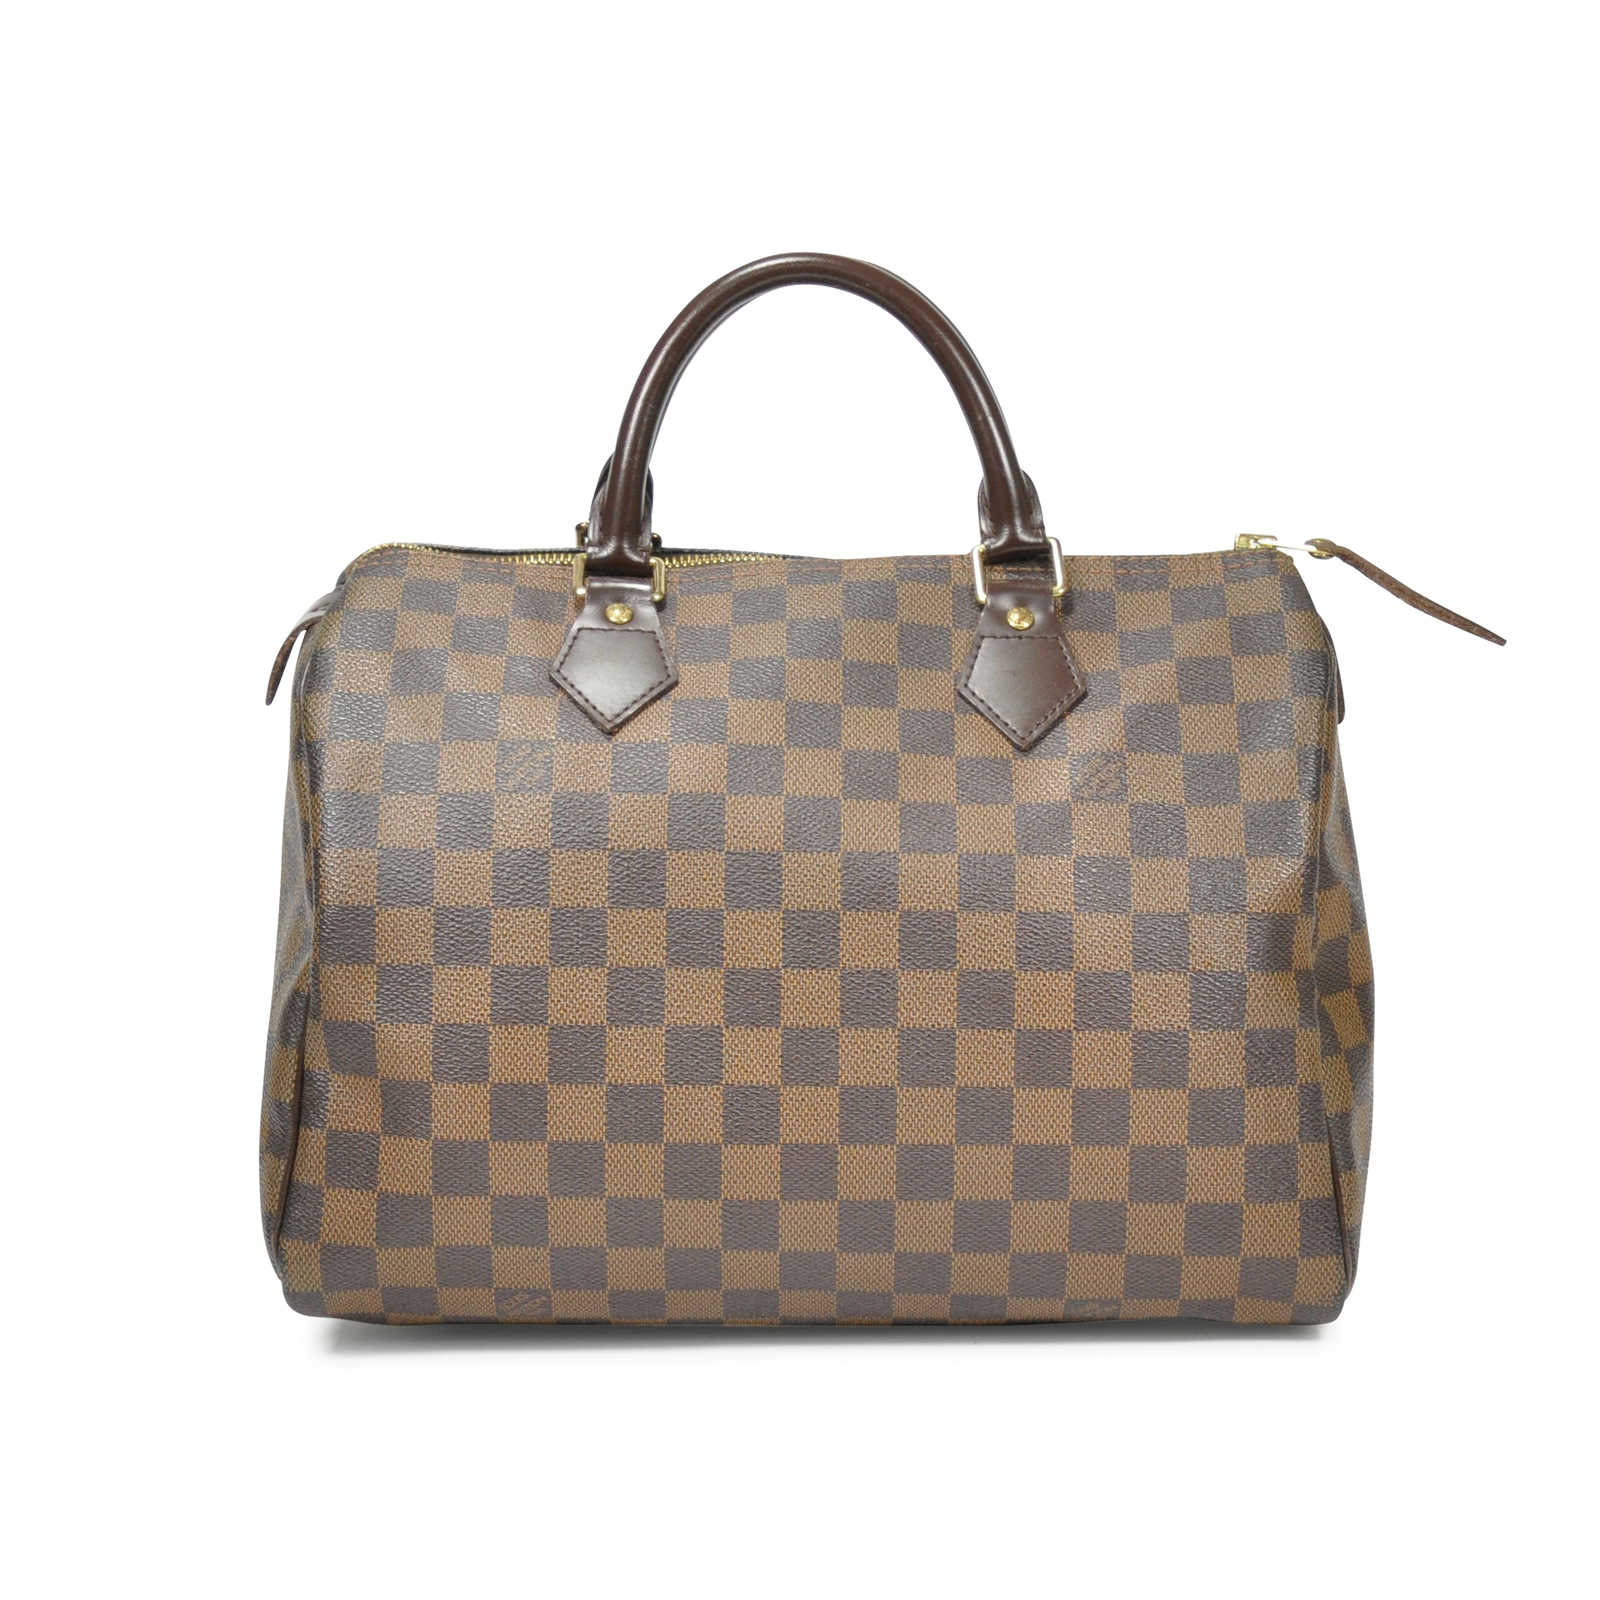 21c669a4 Authentic Second Hand Louis Vuitton Speedy 30 (PSS-237-00006) - THE ...